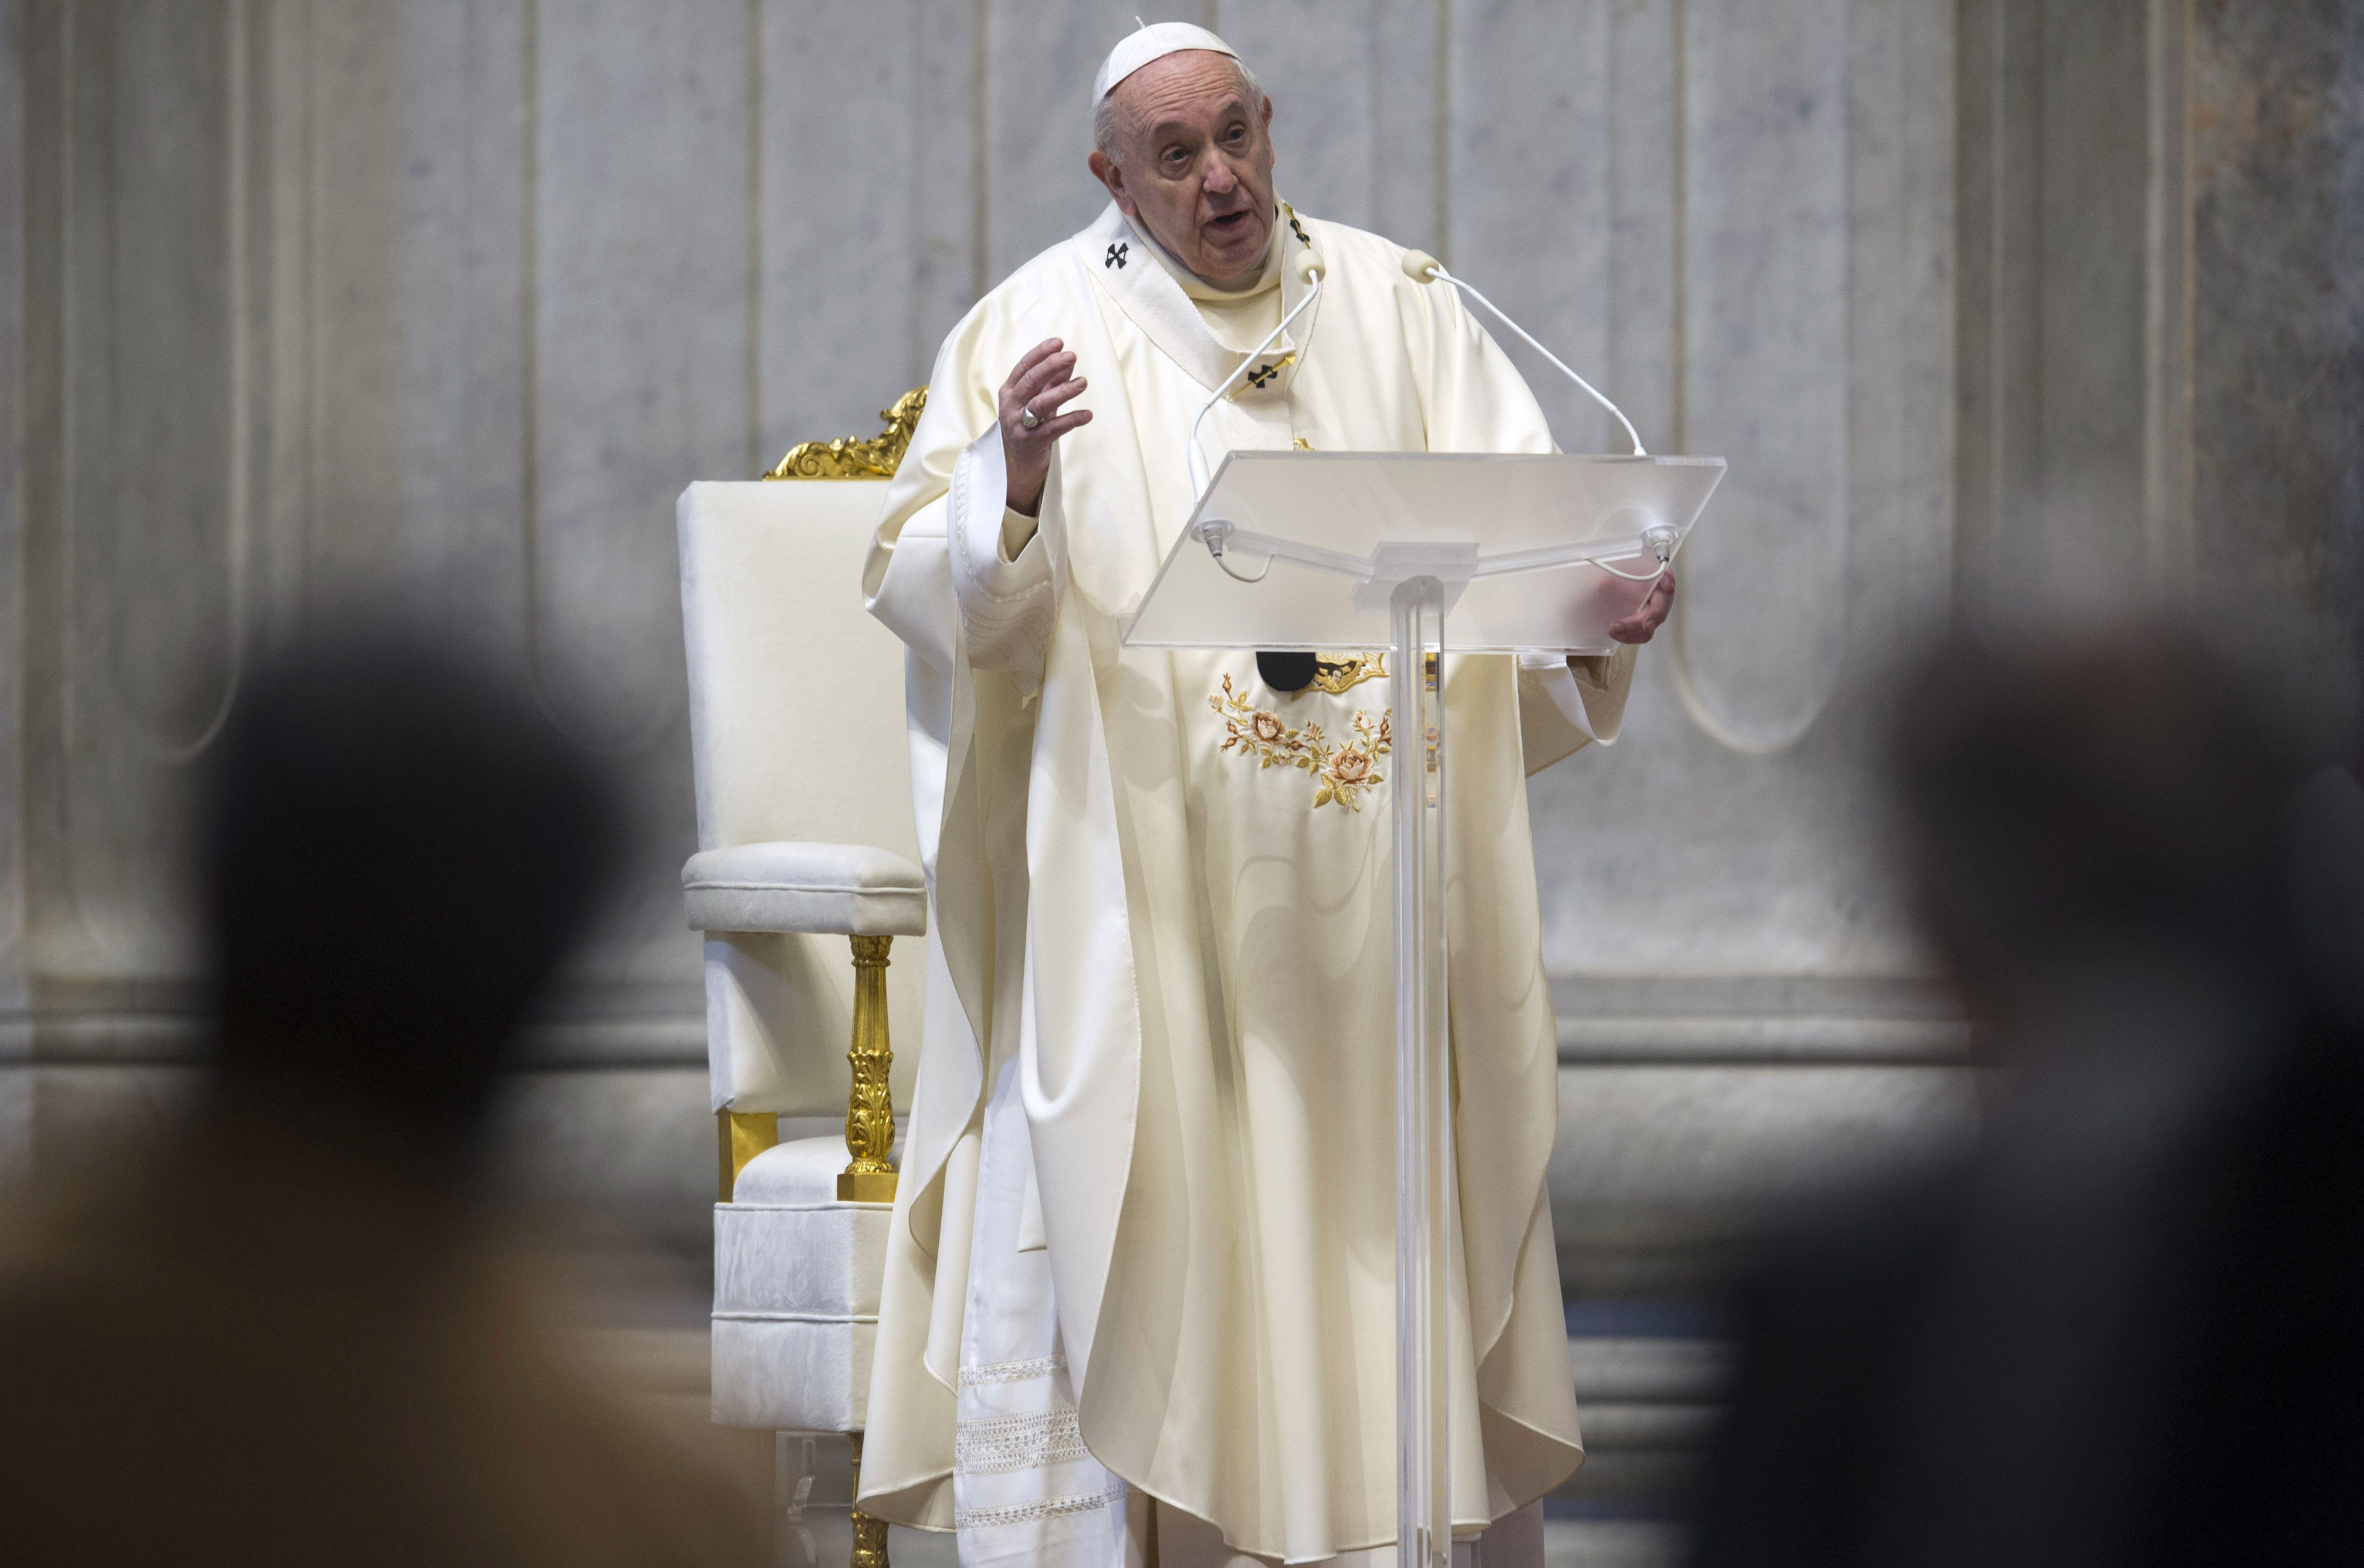 Pope Francis celebrates Holy Mass for the feast of Our Lady of Guadalupe in St. Peter's Basilica on December 12.